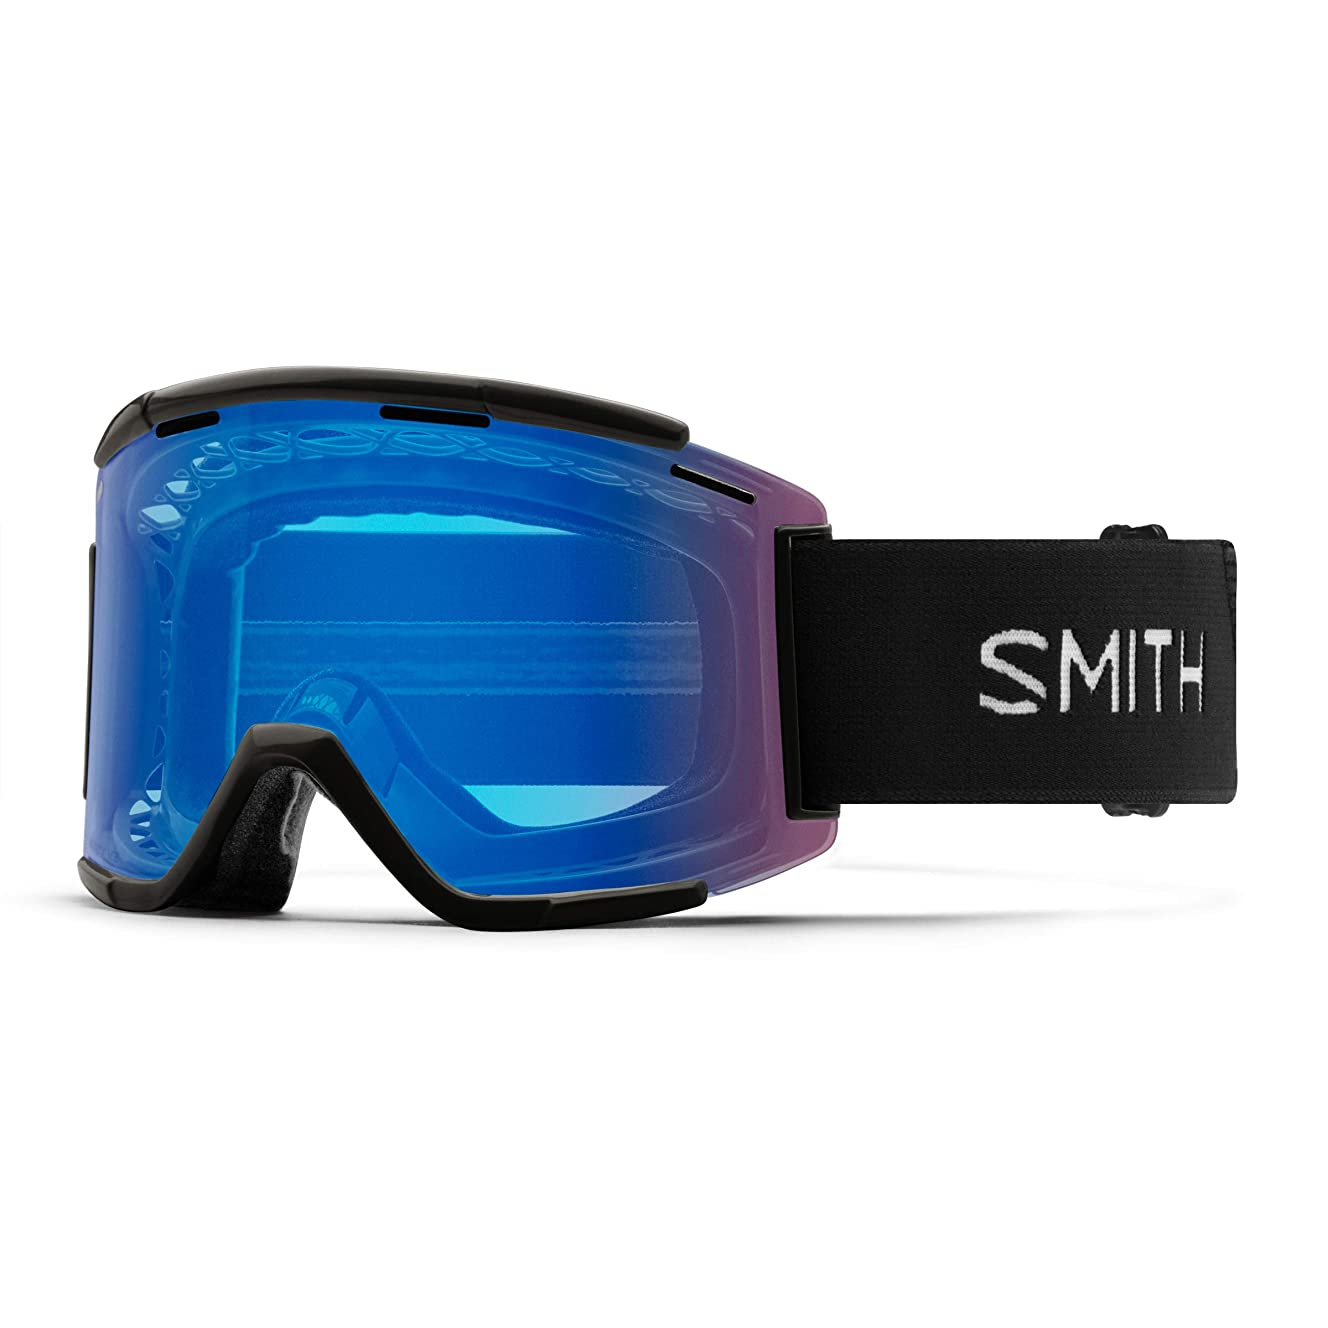 Smith Optics Squad XL Adult Off-Road Cycling Goggles - Black/ChromaPop Contrast Rose/One Size